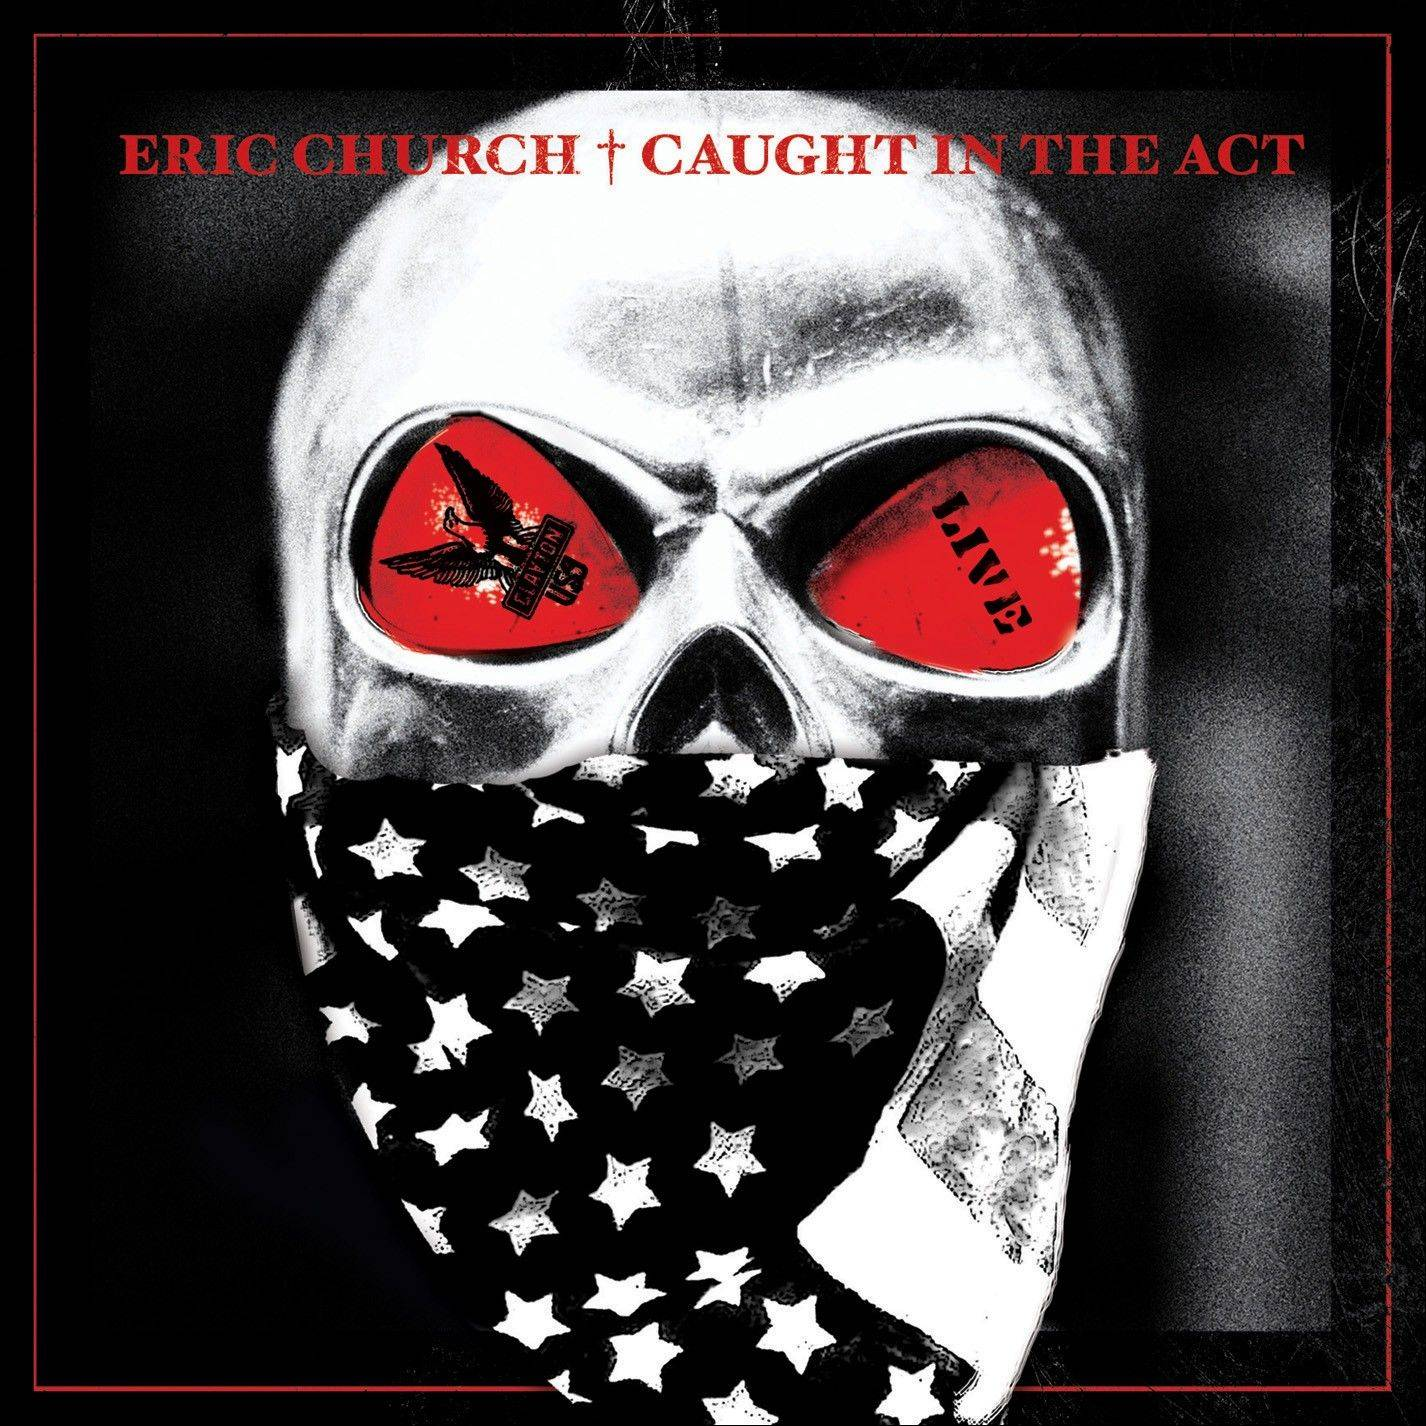 """Caught in the Act"" by Eric Church"